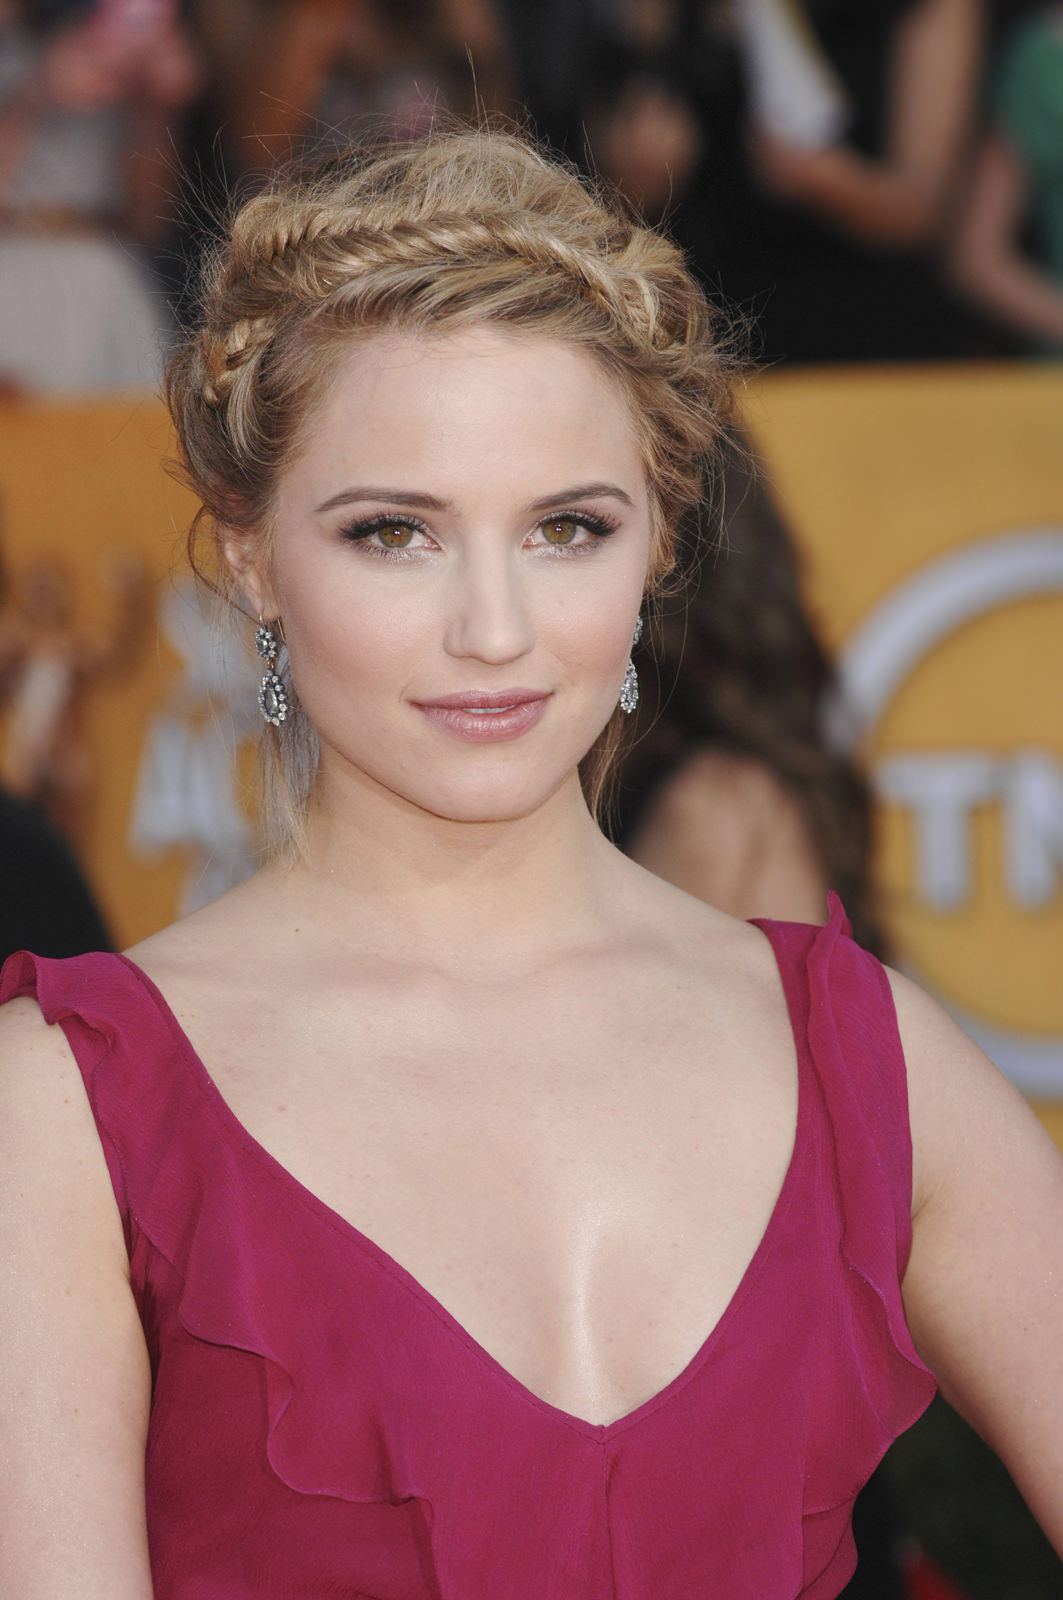 Dianna Agron Photo Gallery